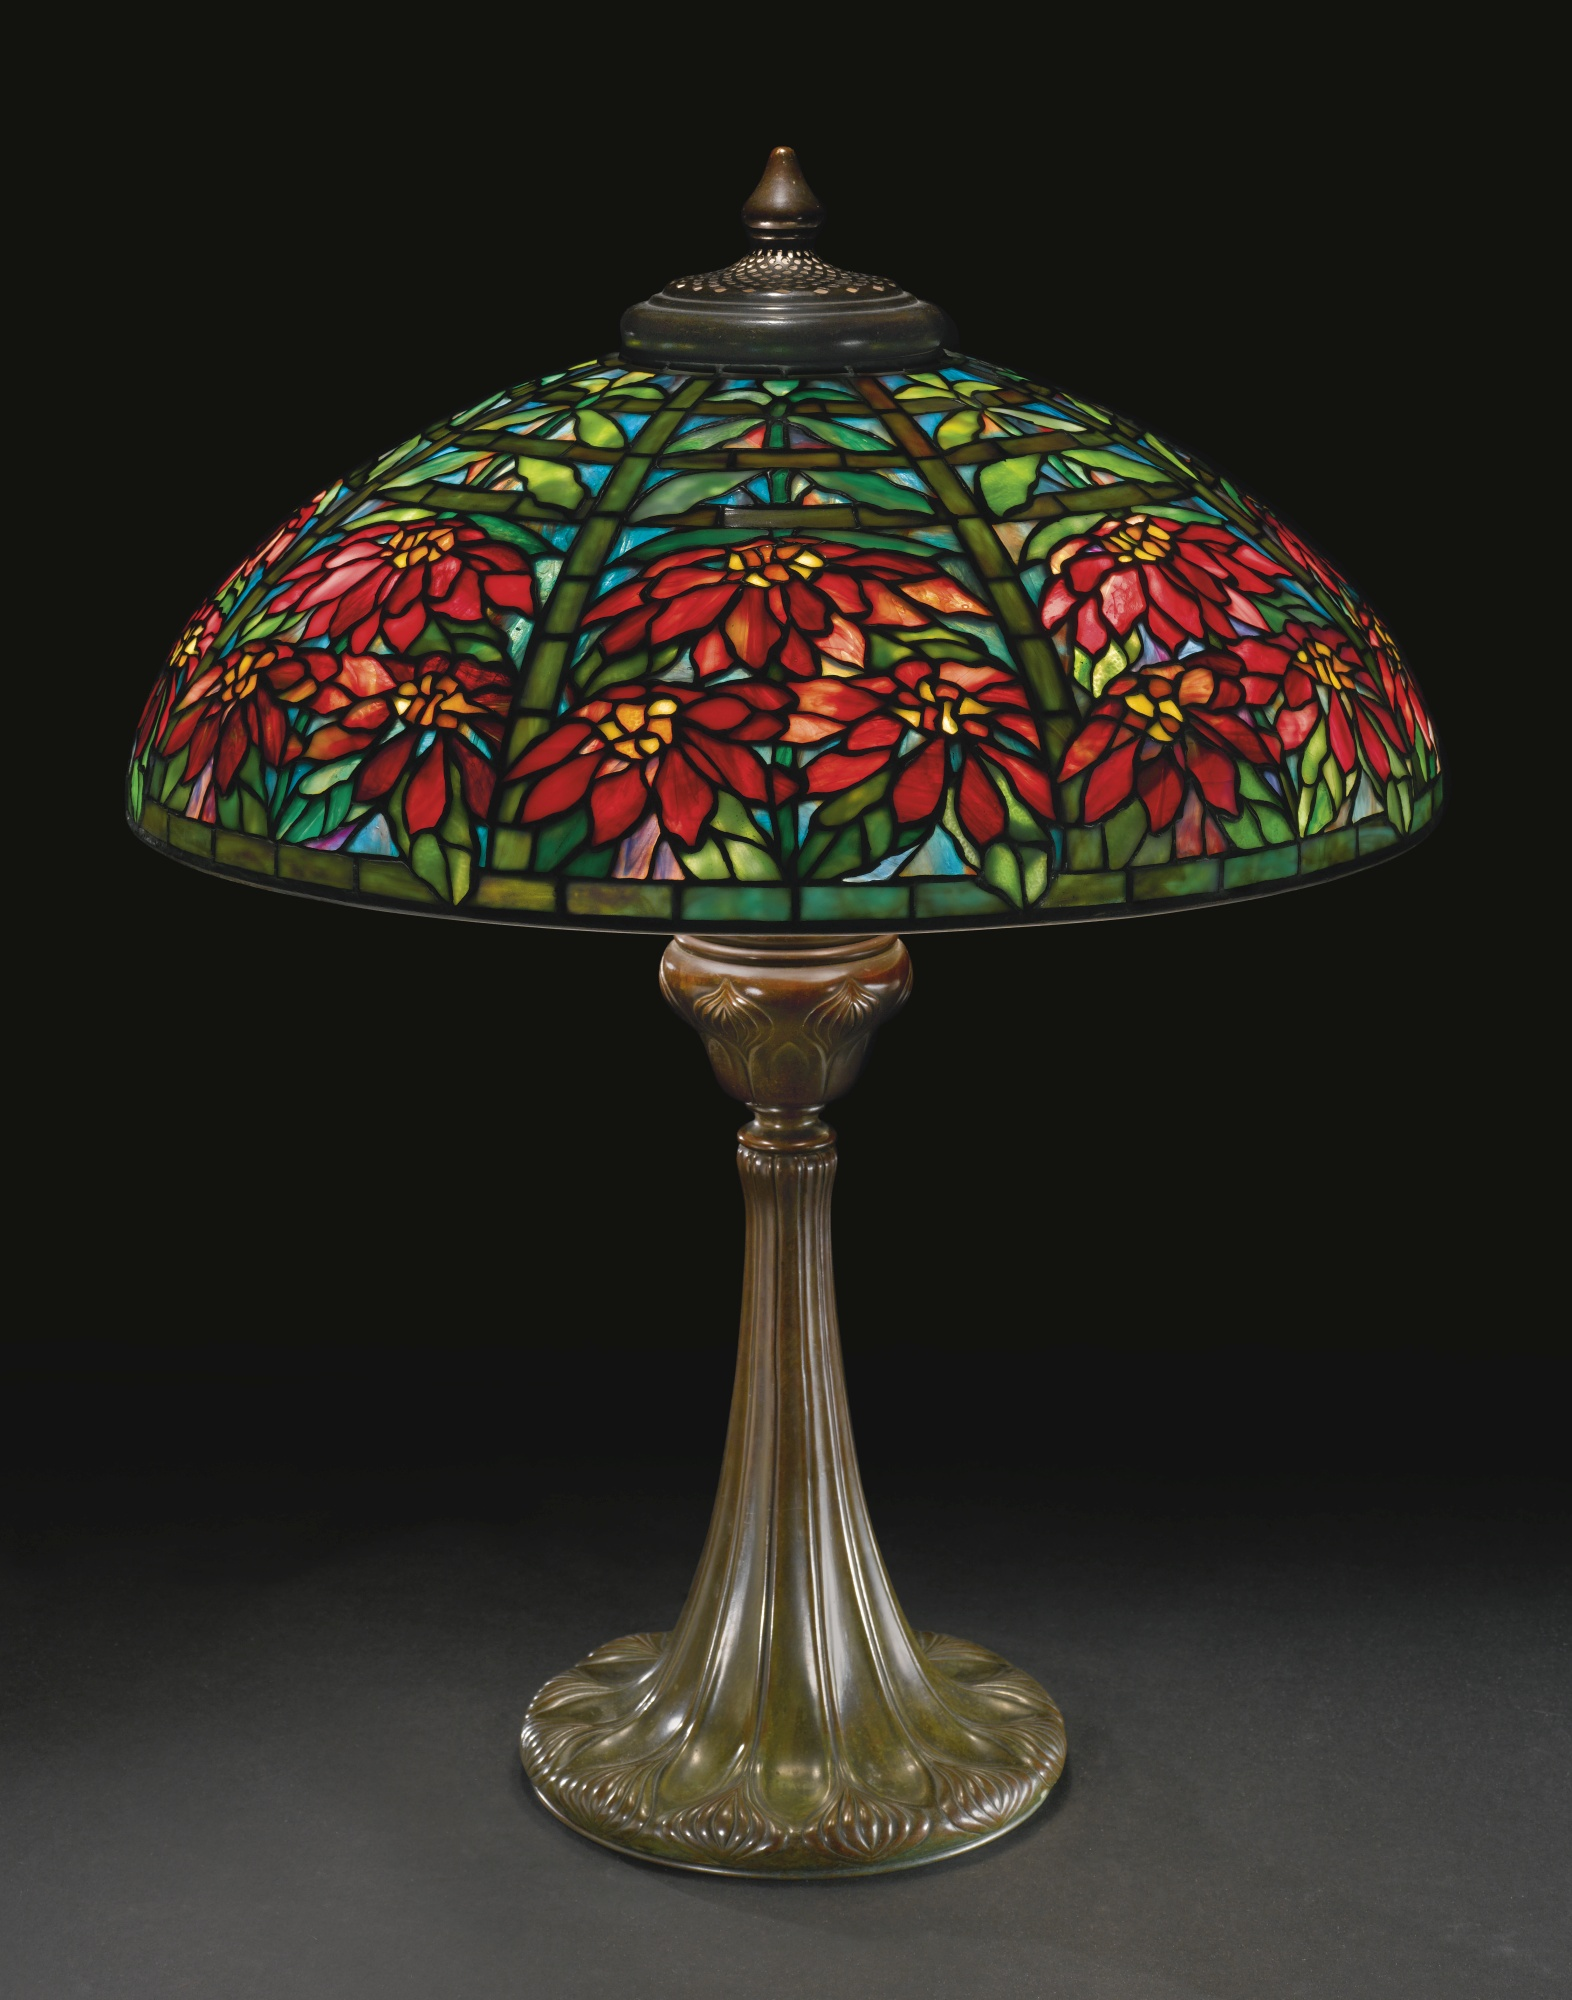 Tiffany Studios Double Poinsettia table lamp. Sotheby's lot #317